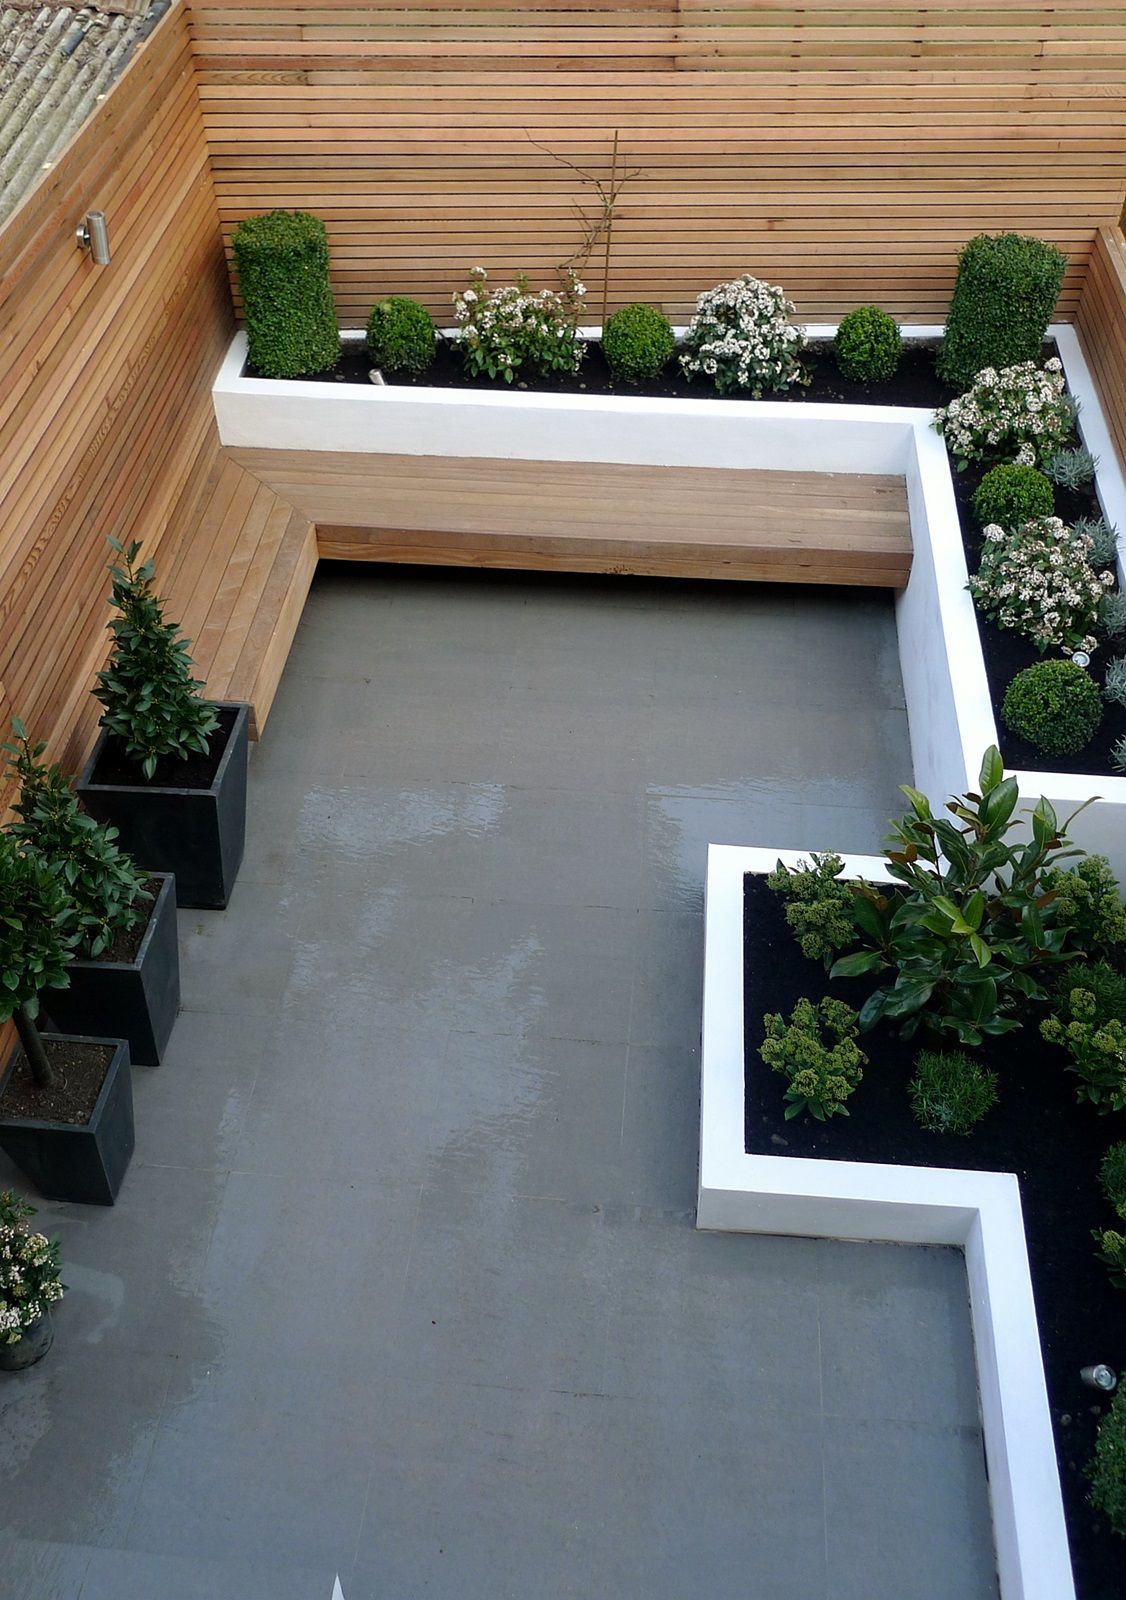 Garden Design Ideas Low Maintenance - Garden design designer clapham balham battersea small low maintenance modern garden 1